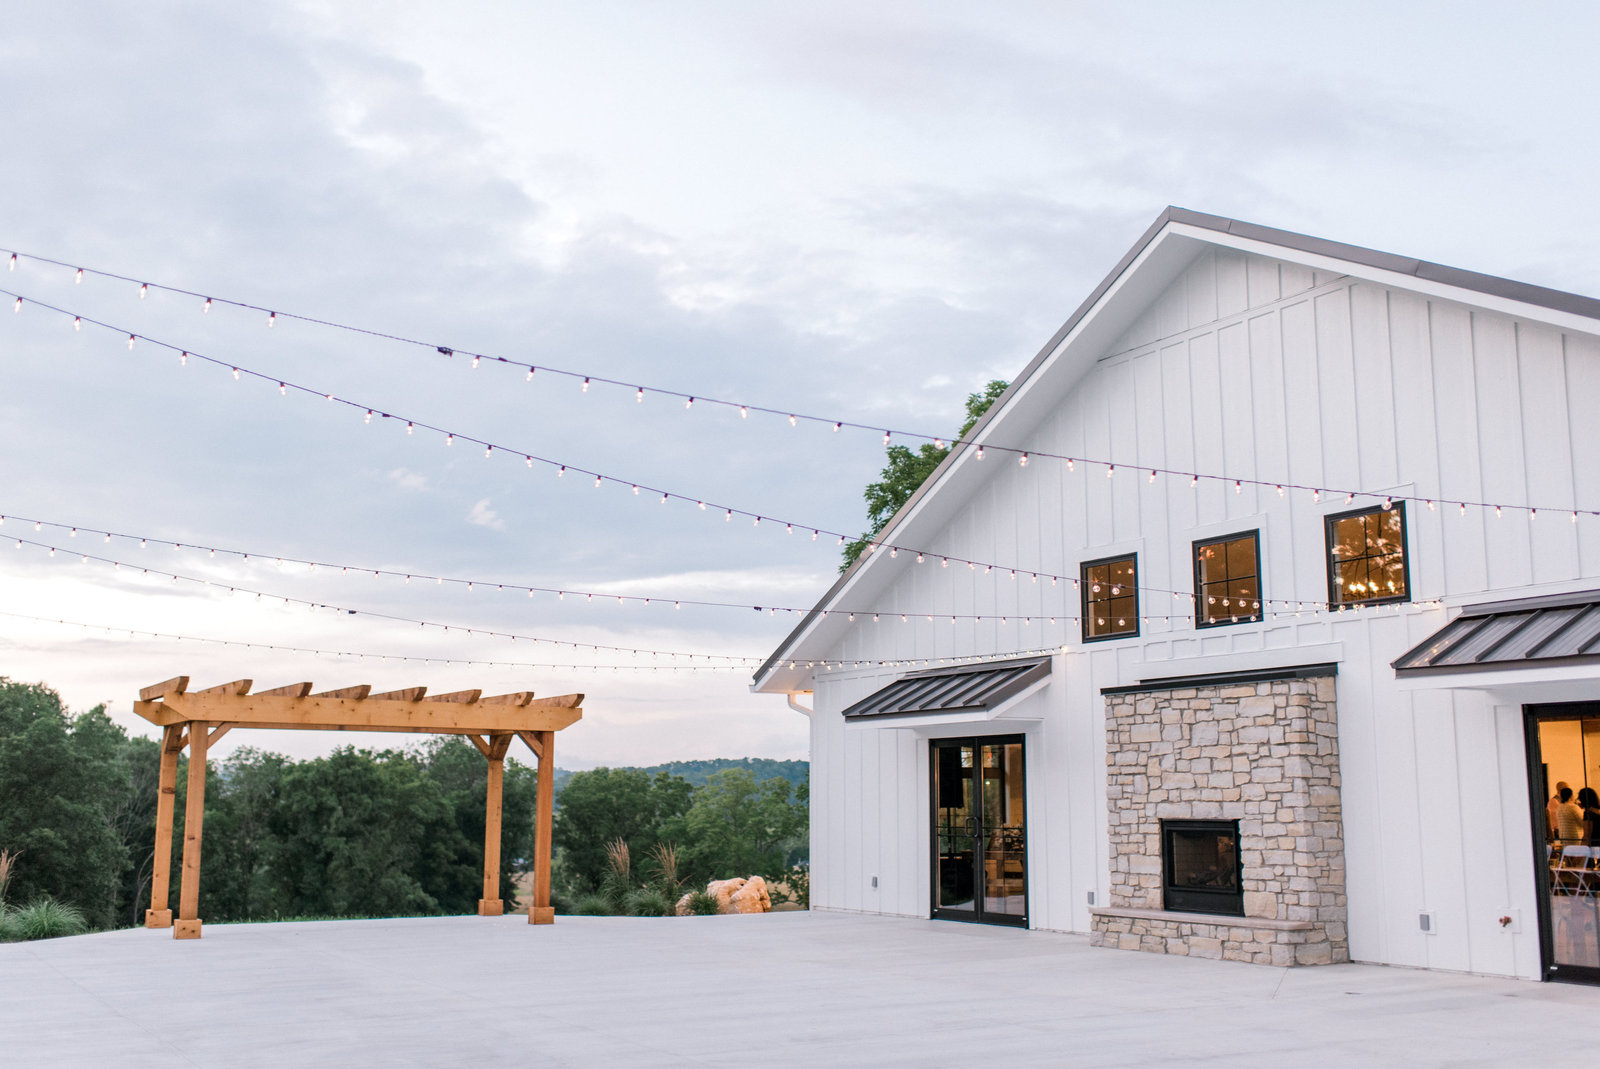 Bloomington_Indiana_The_Wilds_Wedding_Venue_Outdoor_wedding_reception_ideas